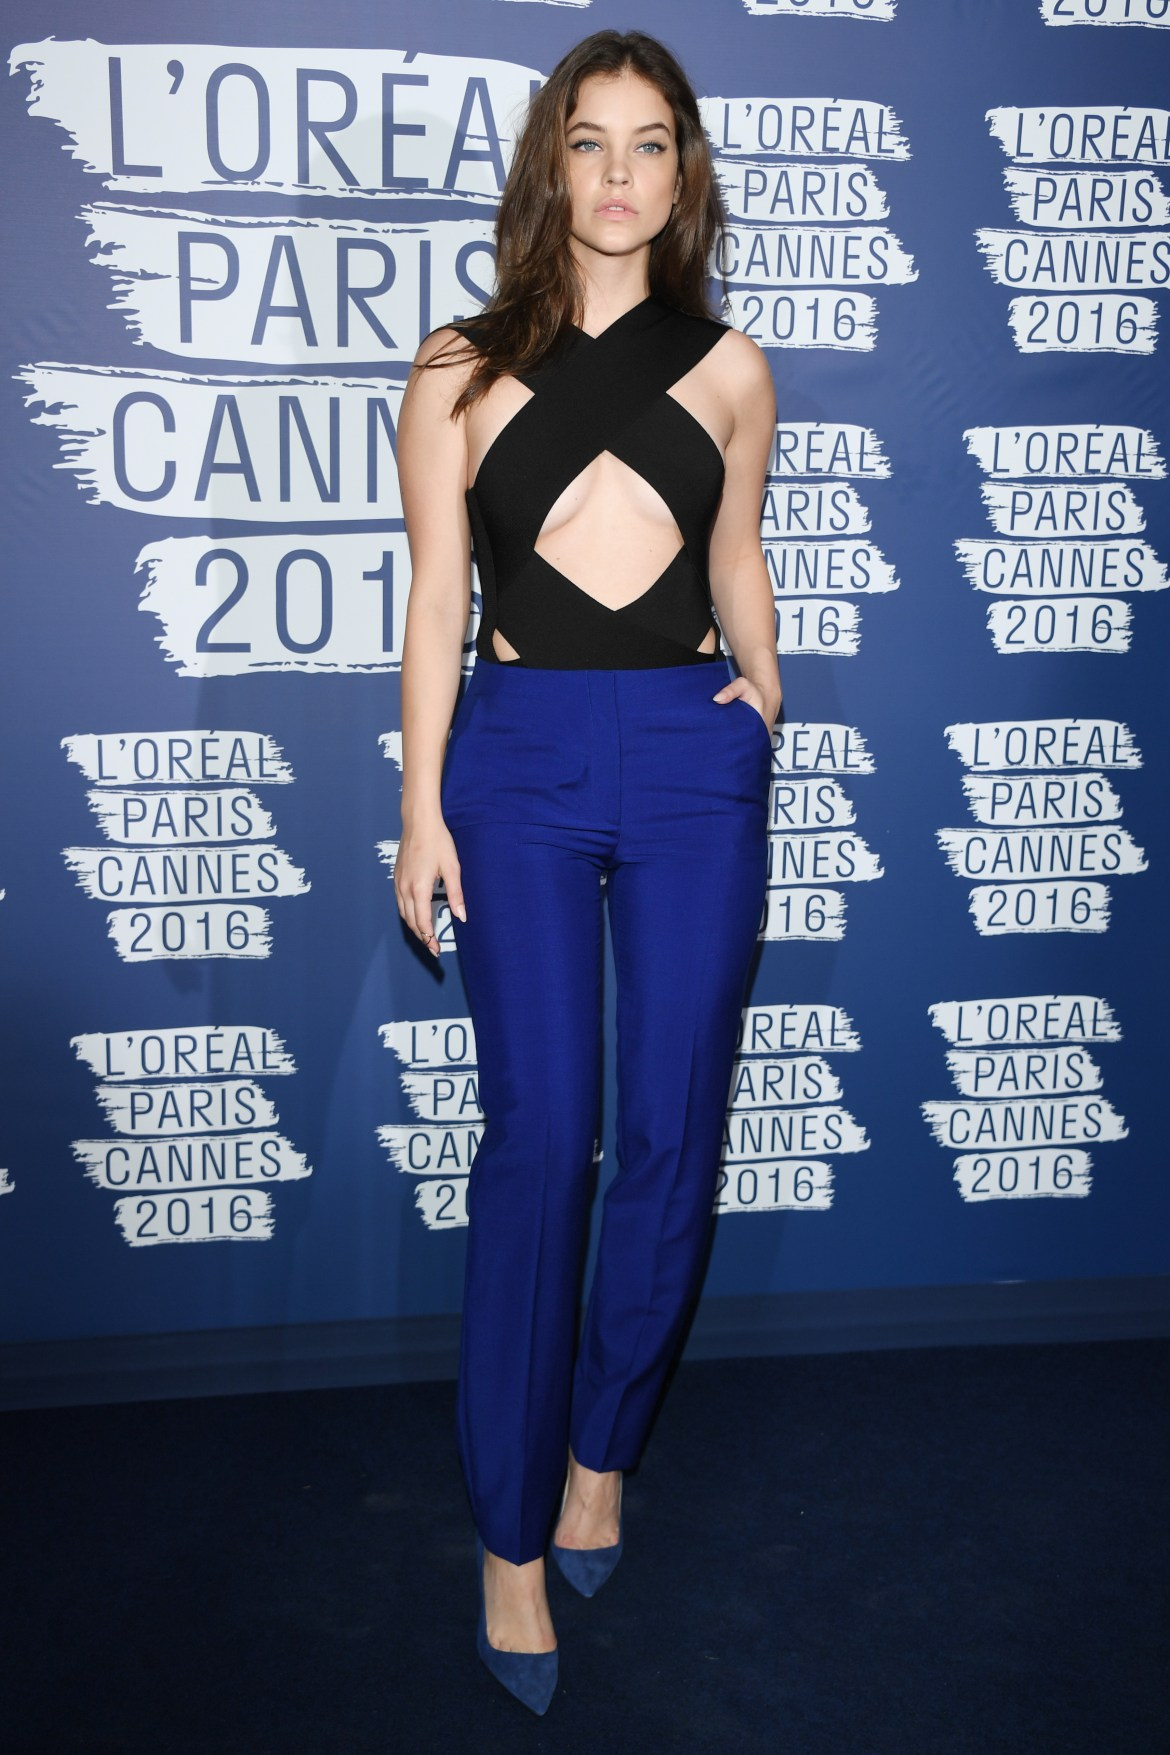 CANNES, FRANCE - MAY 18: Barbara Palvin attends the L'Oreal Party during the annual 69th Cannes Film Festival at on May 18, 2016 in Cannes, France. (Photo by Venturelli/WireImage)